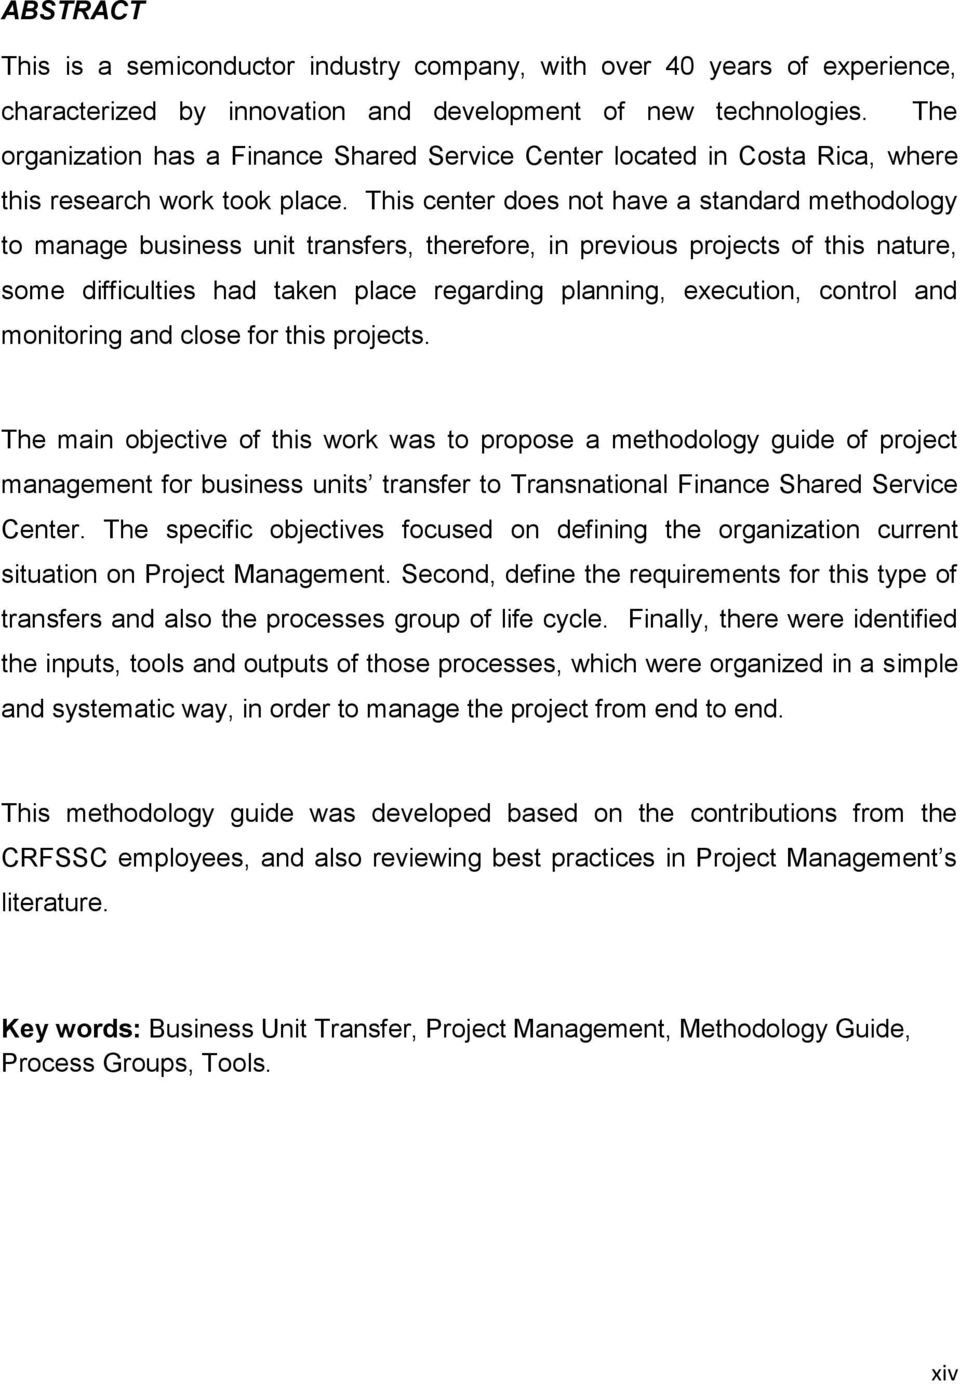 This center does not have a standard methodology to manage business unit transfers, therefore, in previous projects of this nature, some difficulties had taken place regarding planning, execution,